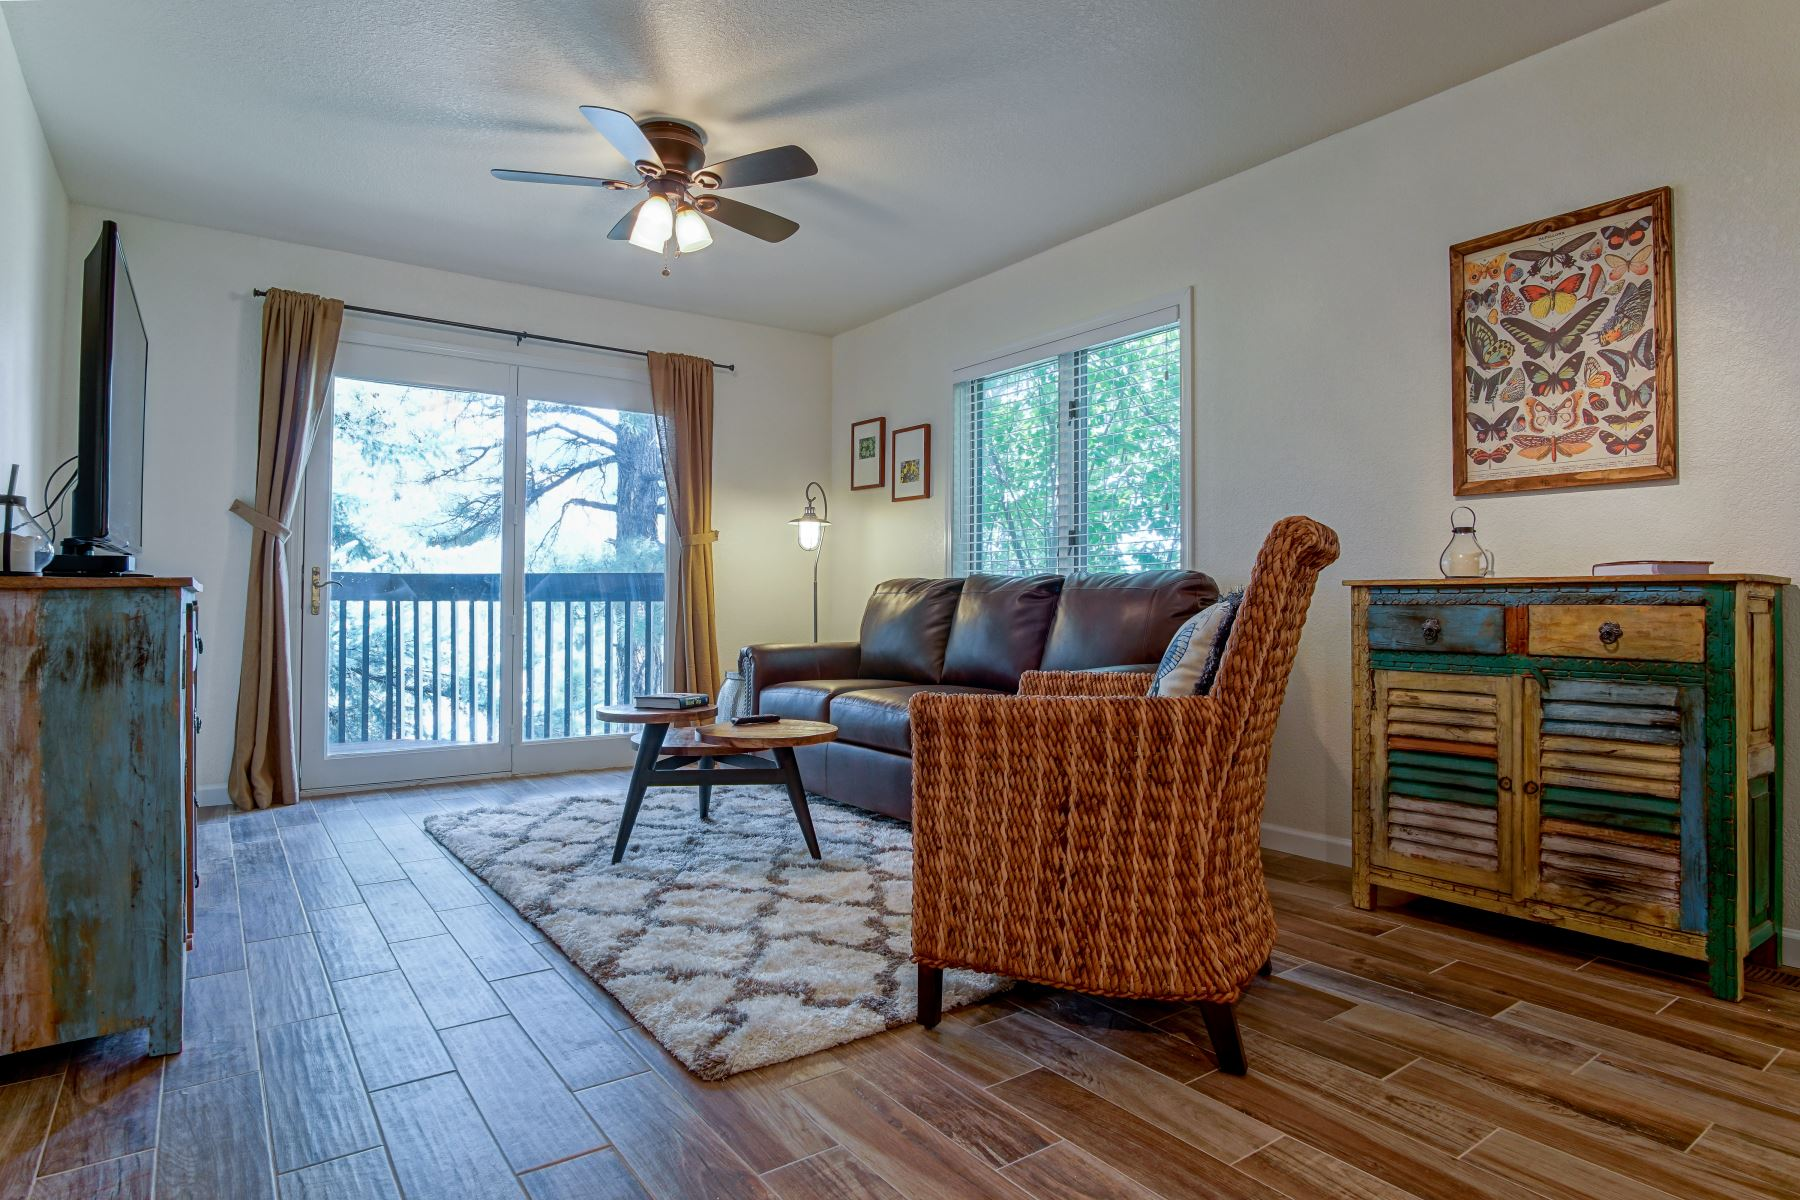 Floor Plan for  Utterly Trendy, Updated, Charming Country Club Condo w/ Golf Course & Mt Views